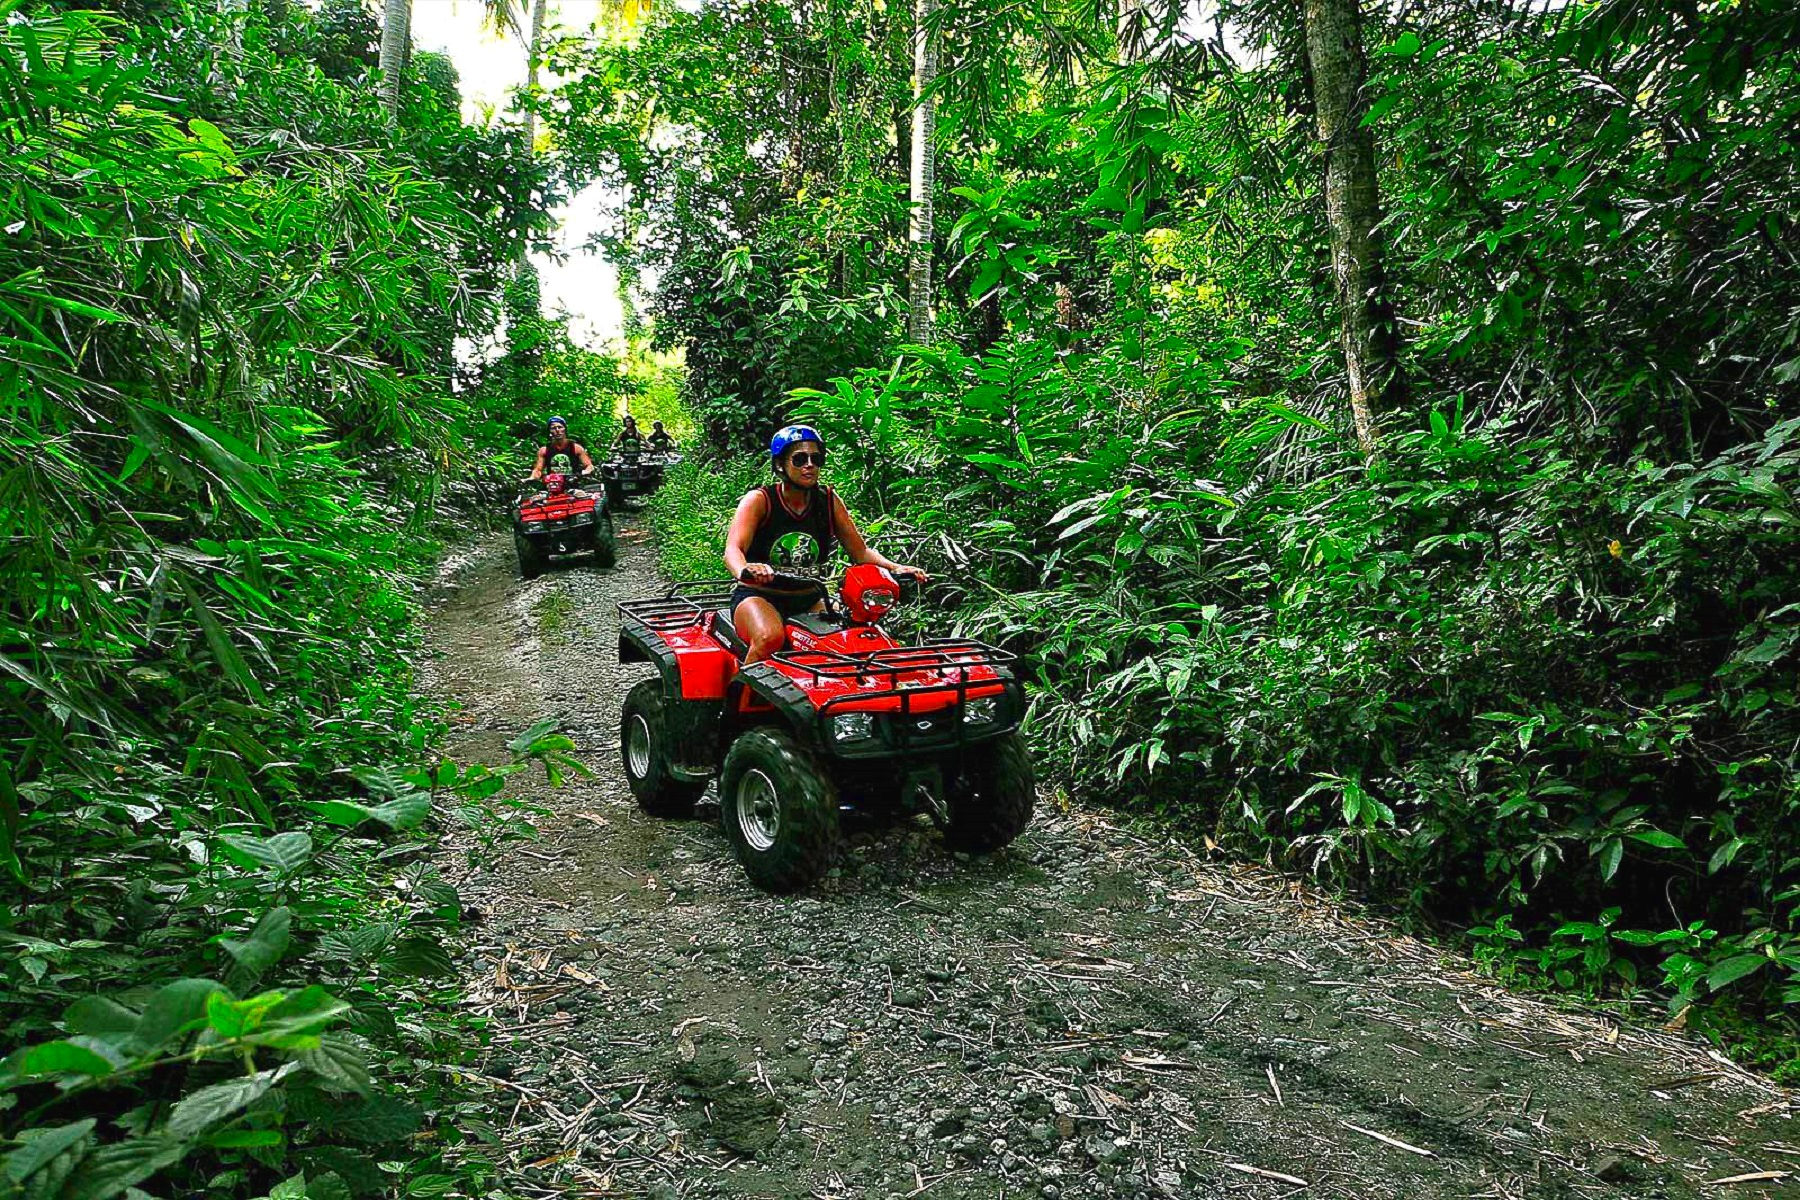 ATV - Kauai ATV tours are a great combination of island sightseeing and a fun activity. Hop on an ATV (or share one with a friend or family member) and explore Kauai's countryside – areas that are off limits to regular cars. Drive along dirt roads and through streams and mud pools and enjoy scenic views along the way.Kipu Ranch AdventuresKauai ATVPrinceville Ranch Adventures